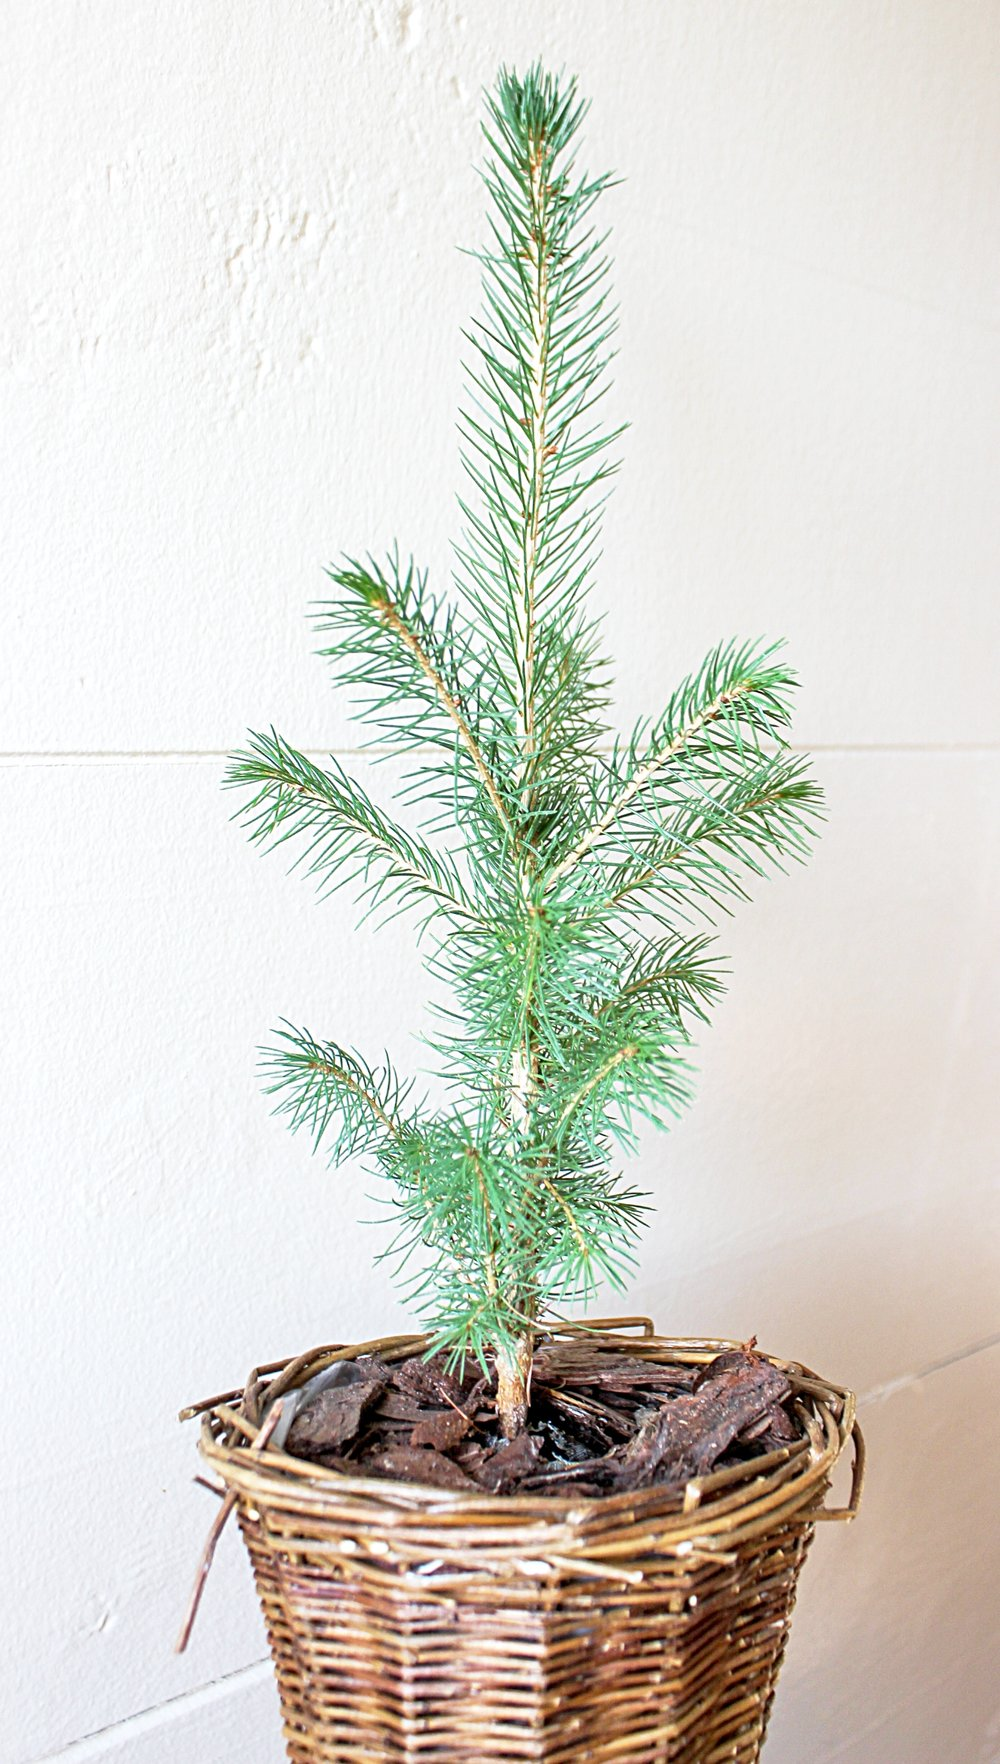 Little Saps - Norway Spruce